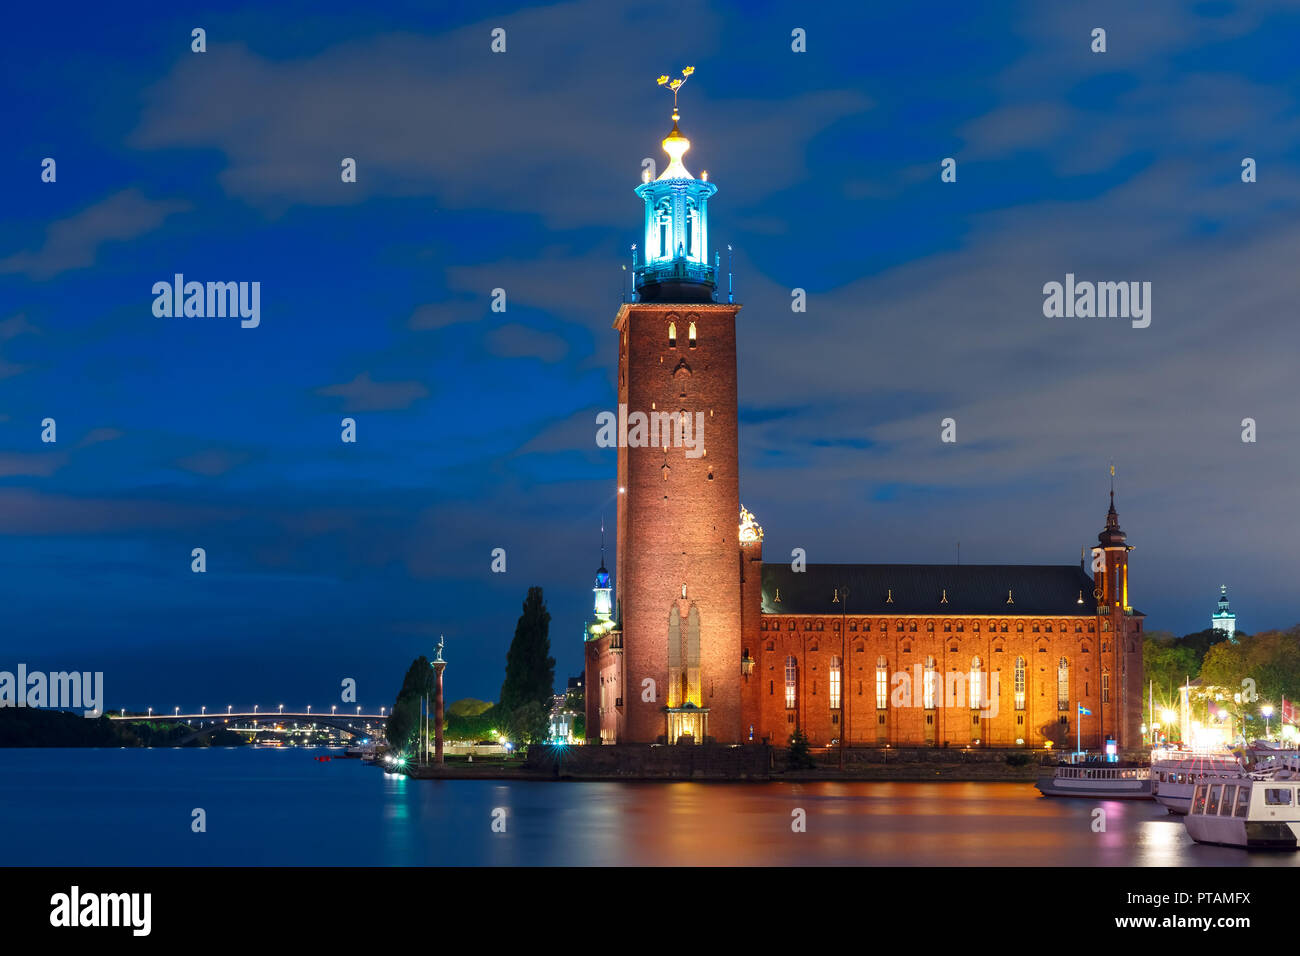 Stockholm City Hall at night, Stockholm, Sweden Stock Photo